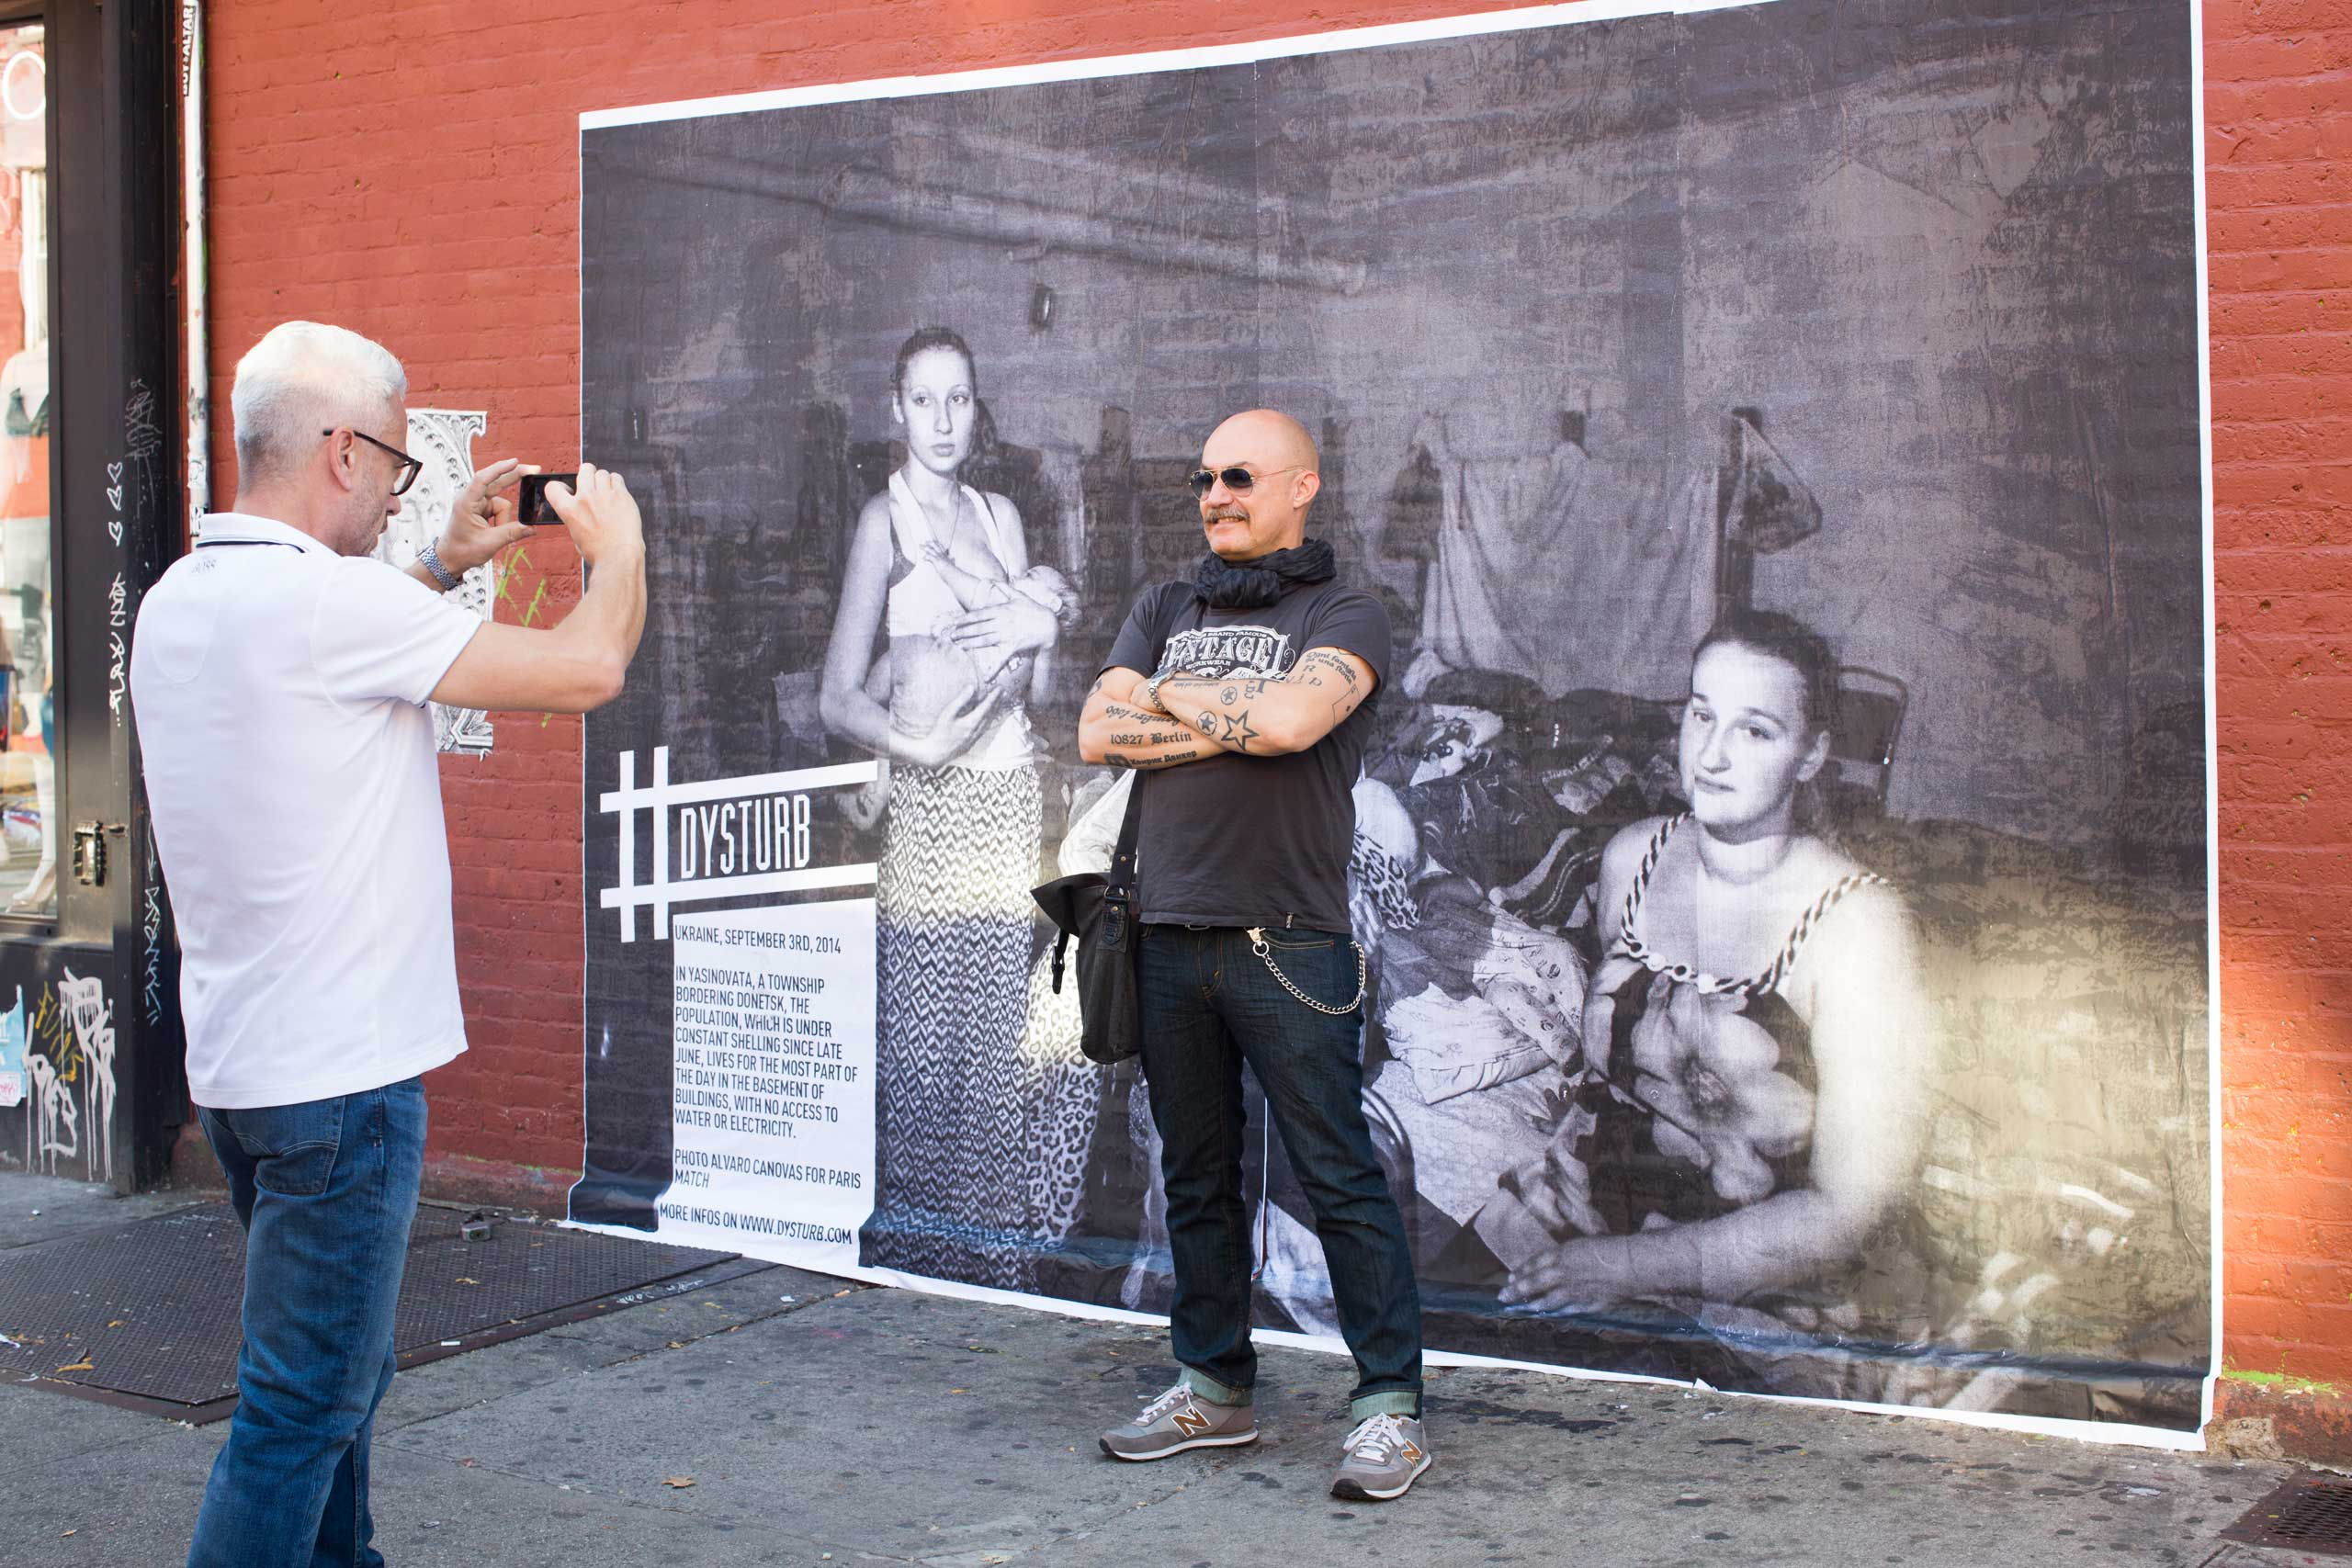 A New Yorker in front of one of Dysturb's photographs (in Brooklyn, on the corner of N 6th Street and Bedford Avenue). October 17th 2014.